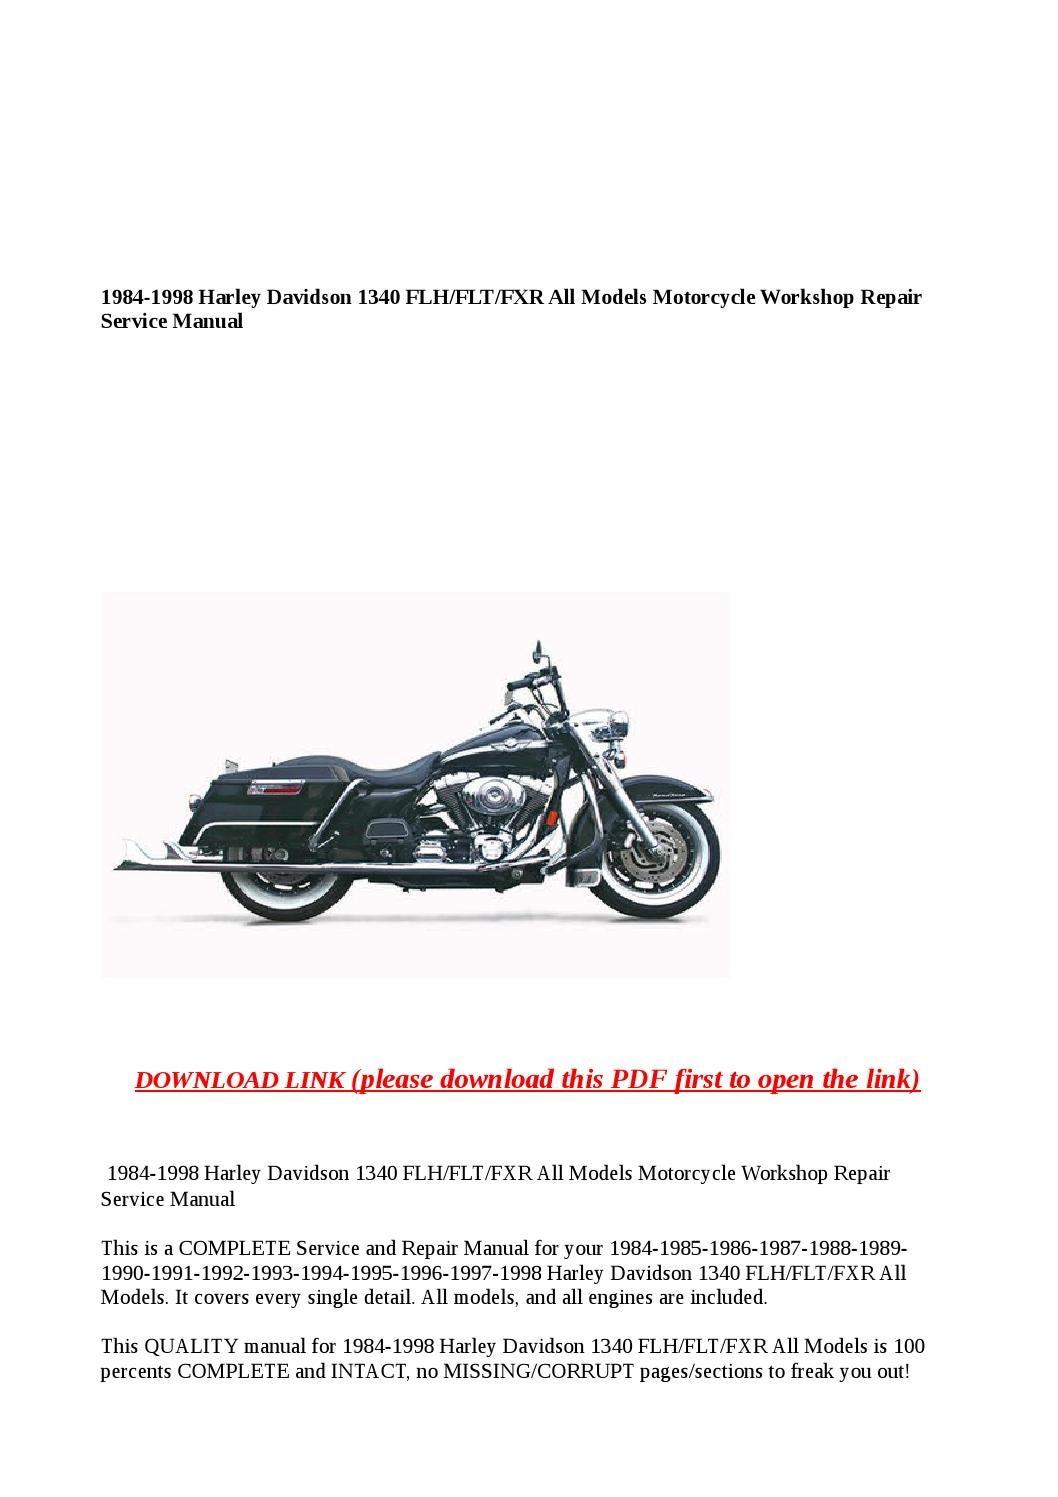 hight resolution of 1984 1998 harley davidson 1340 flh flt fxr all models motorcycle workshop repair service manual by